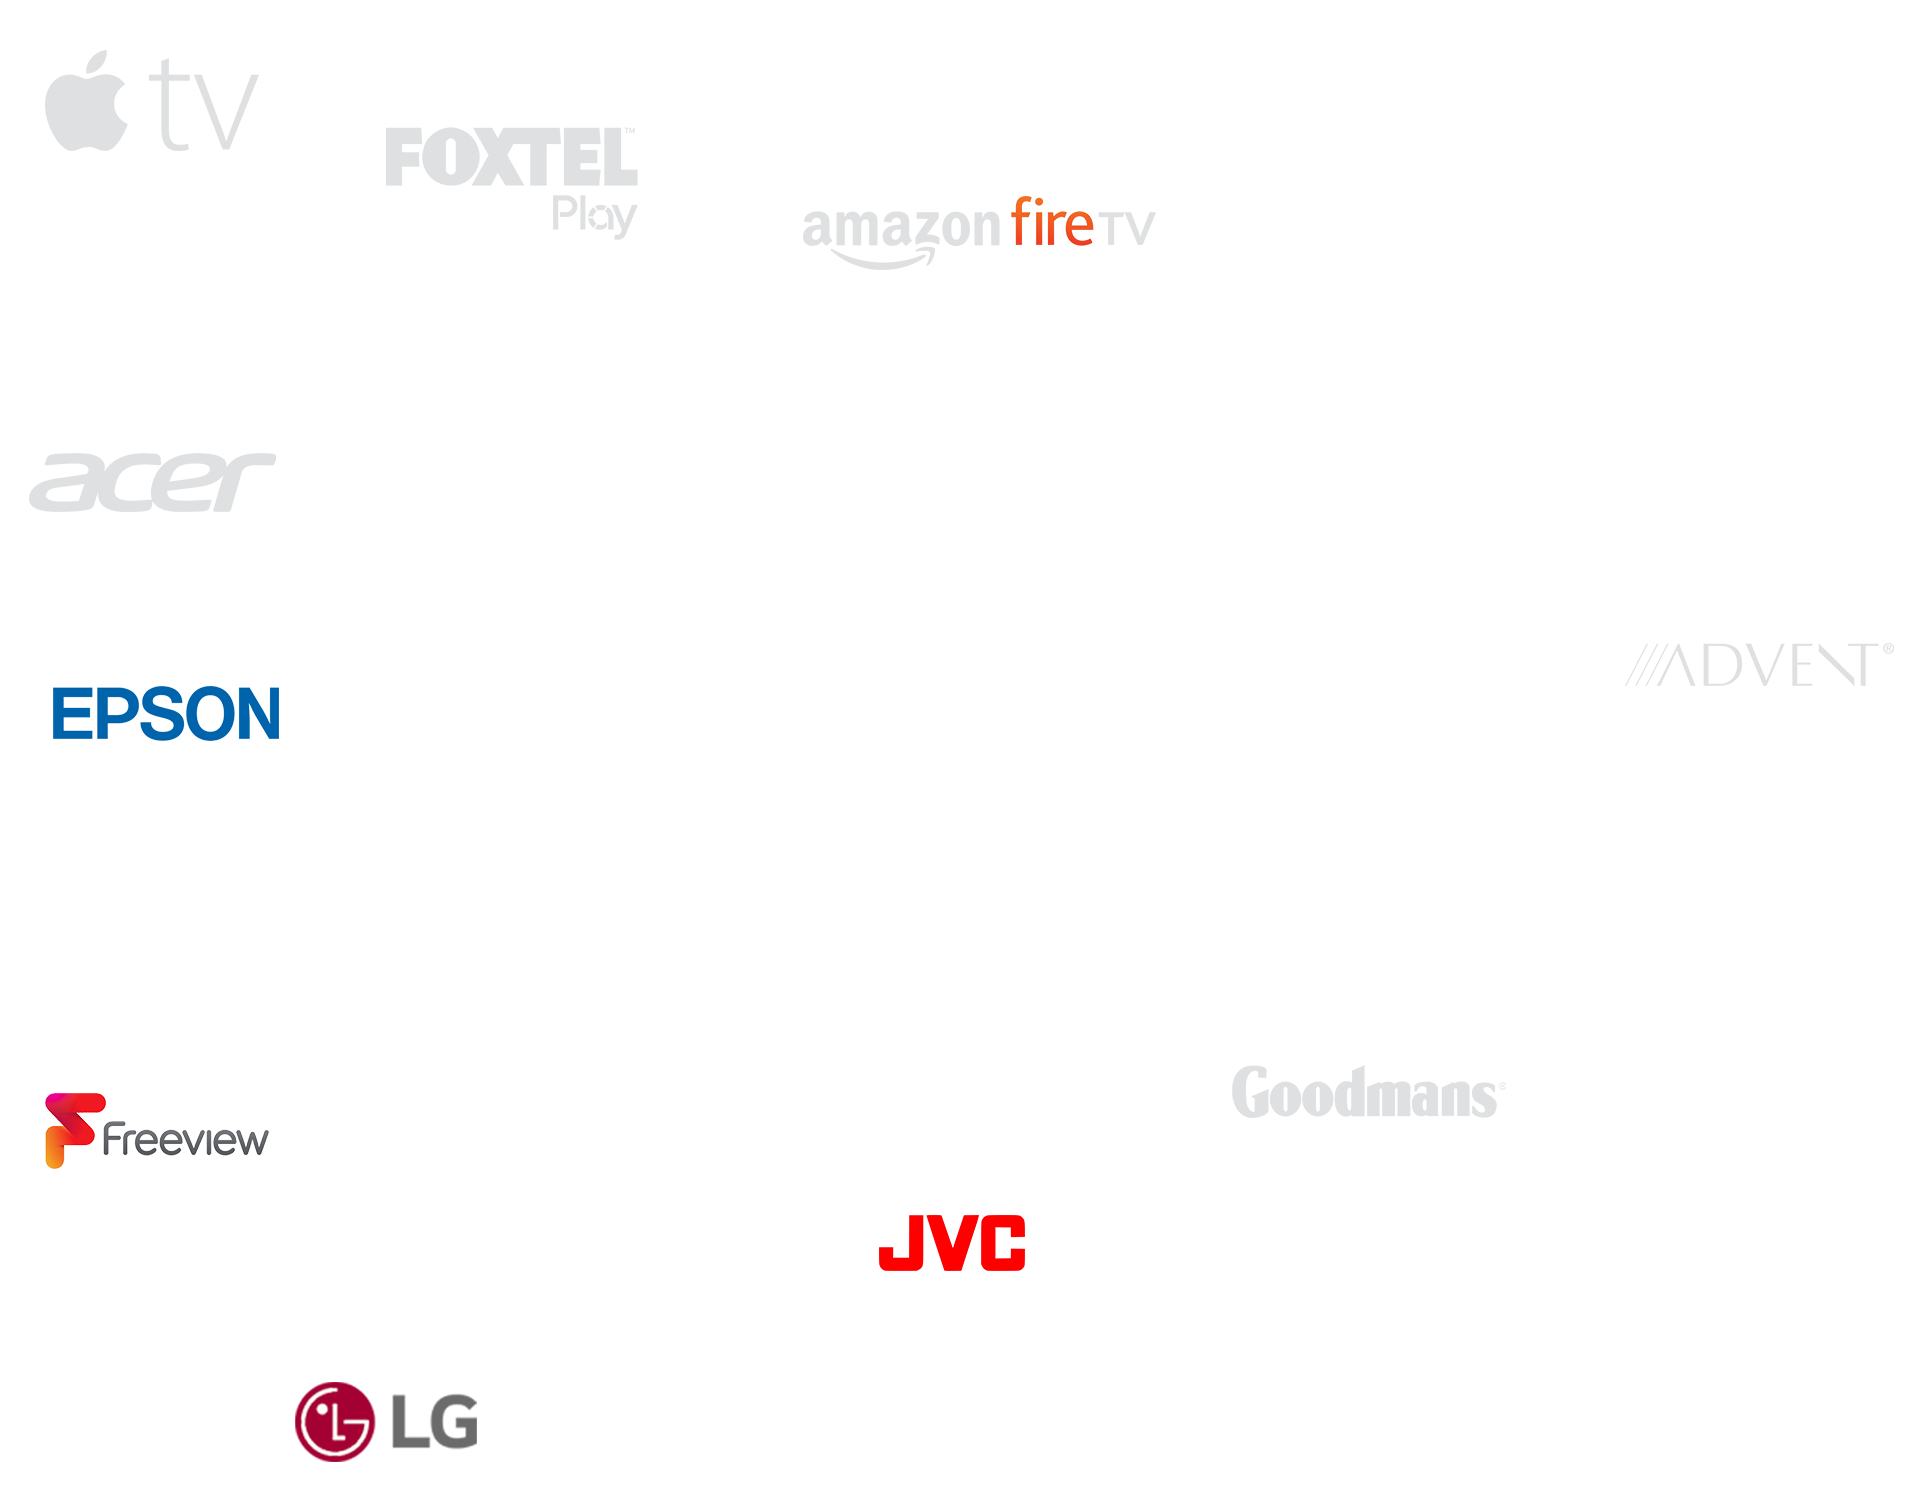 Logos of popular HDMI devices